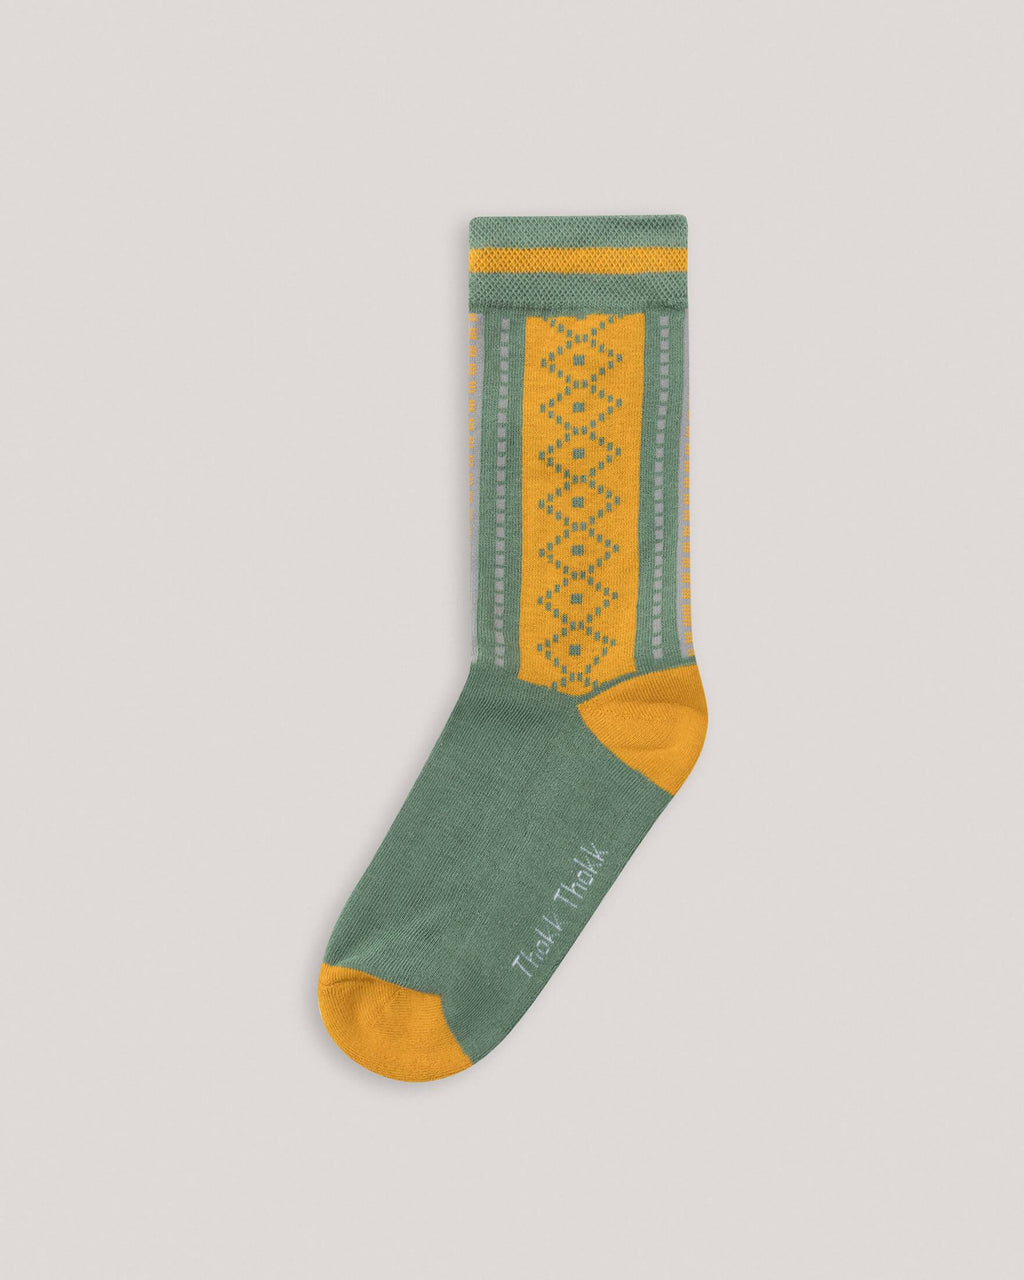 variant_1 | High Socks Yellow Green Women ThokkThokk | DE Socken Gelb Grün Damen ThokkThokk